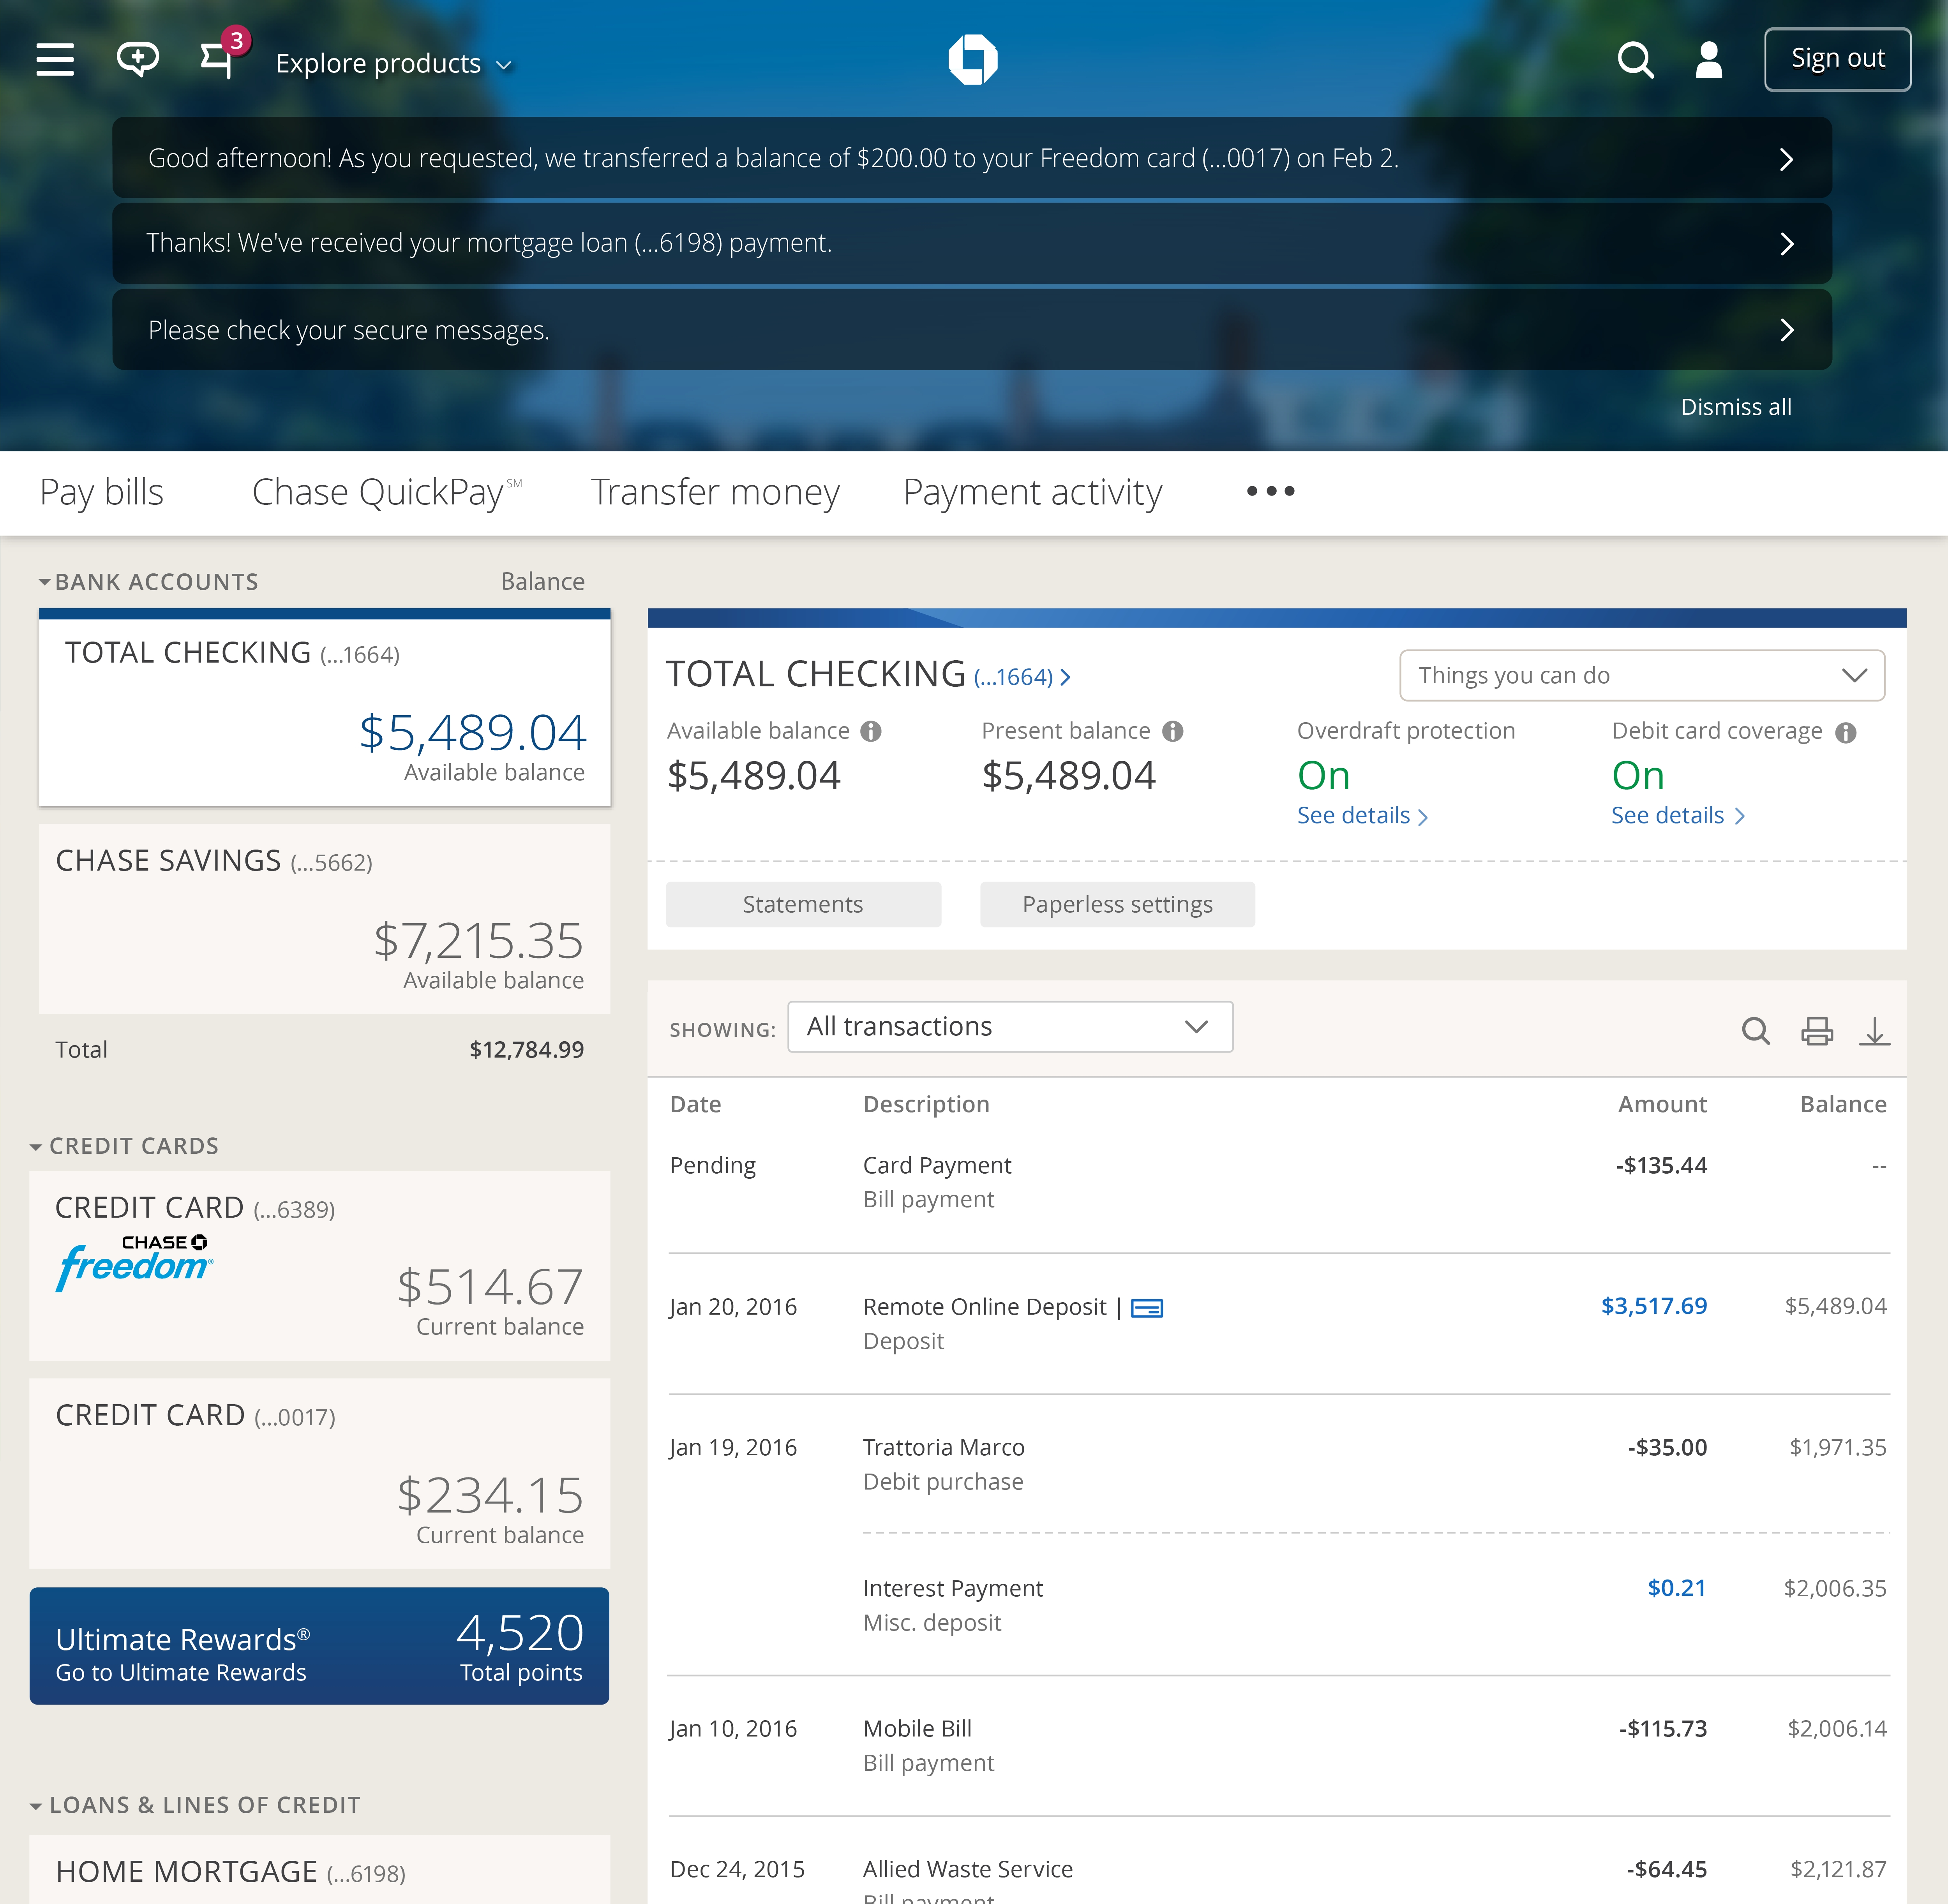 Aug 13, · The Chase College Checking℠ account is available to college students ages and for a limited time, a $ bonus can be applied to the account. When applying, it is necessary to have /